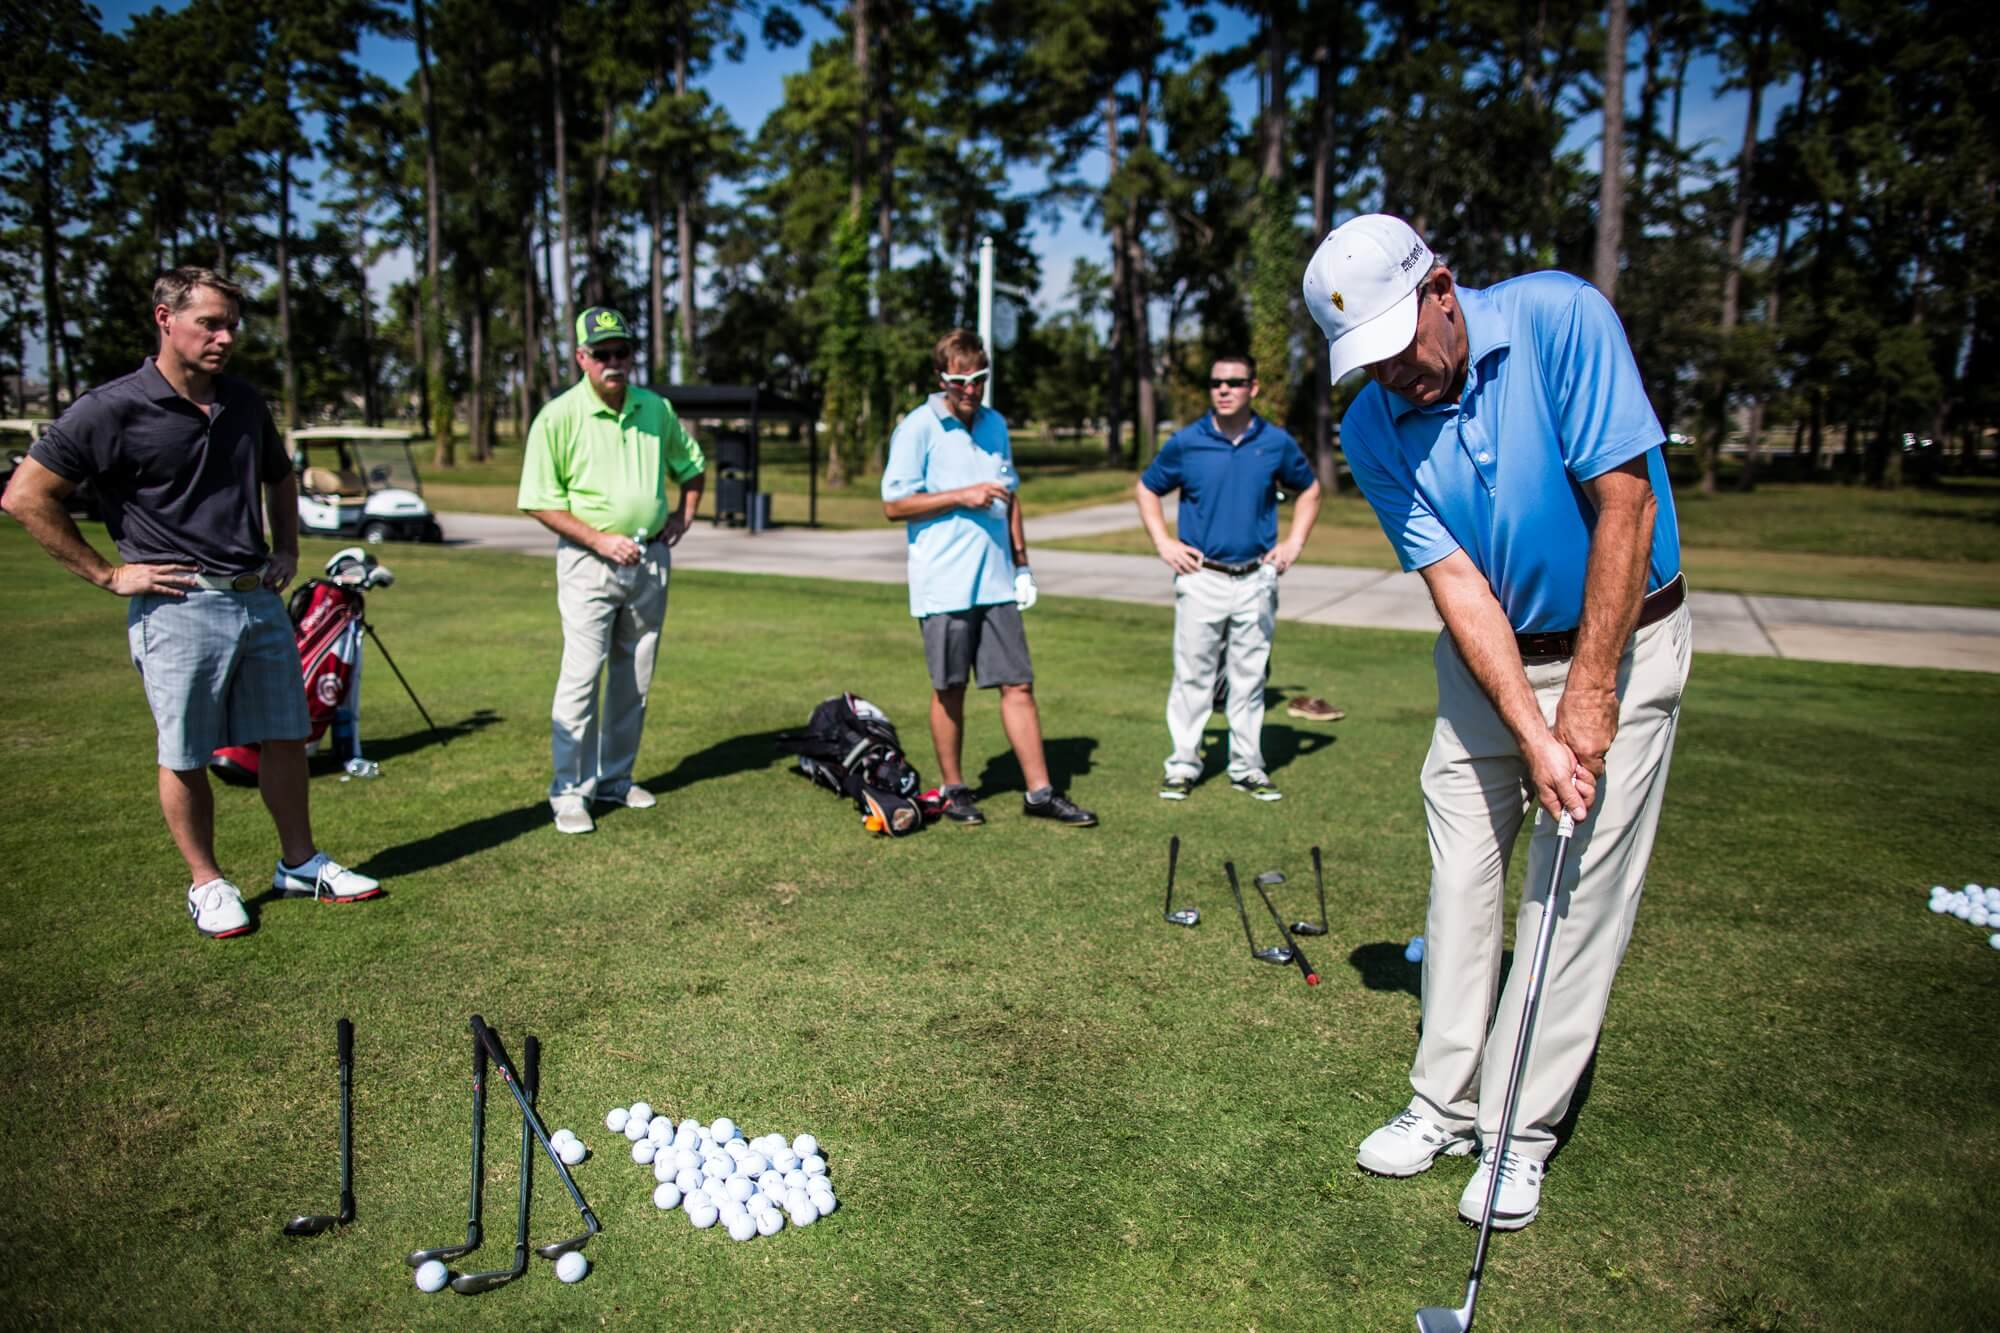 Golfers practice at the pre-tournament clinic.